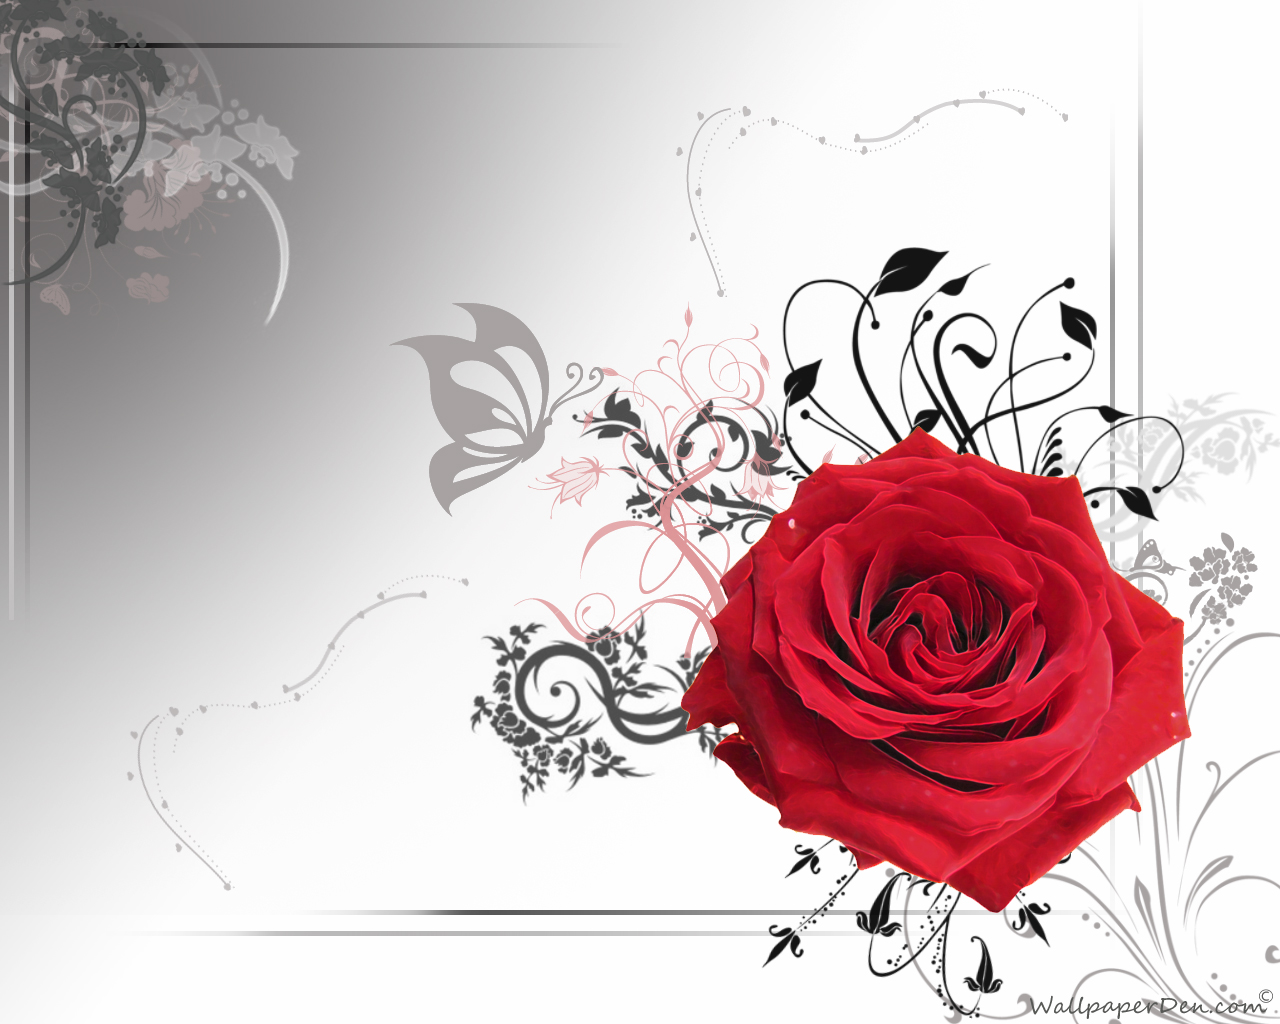 Red Rose Wallpaper Free Download 18 Hd Wallpaper Hdflowerwallpaper Com